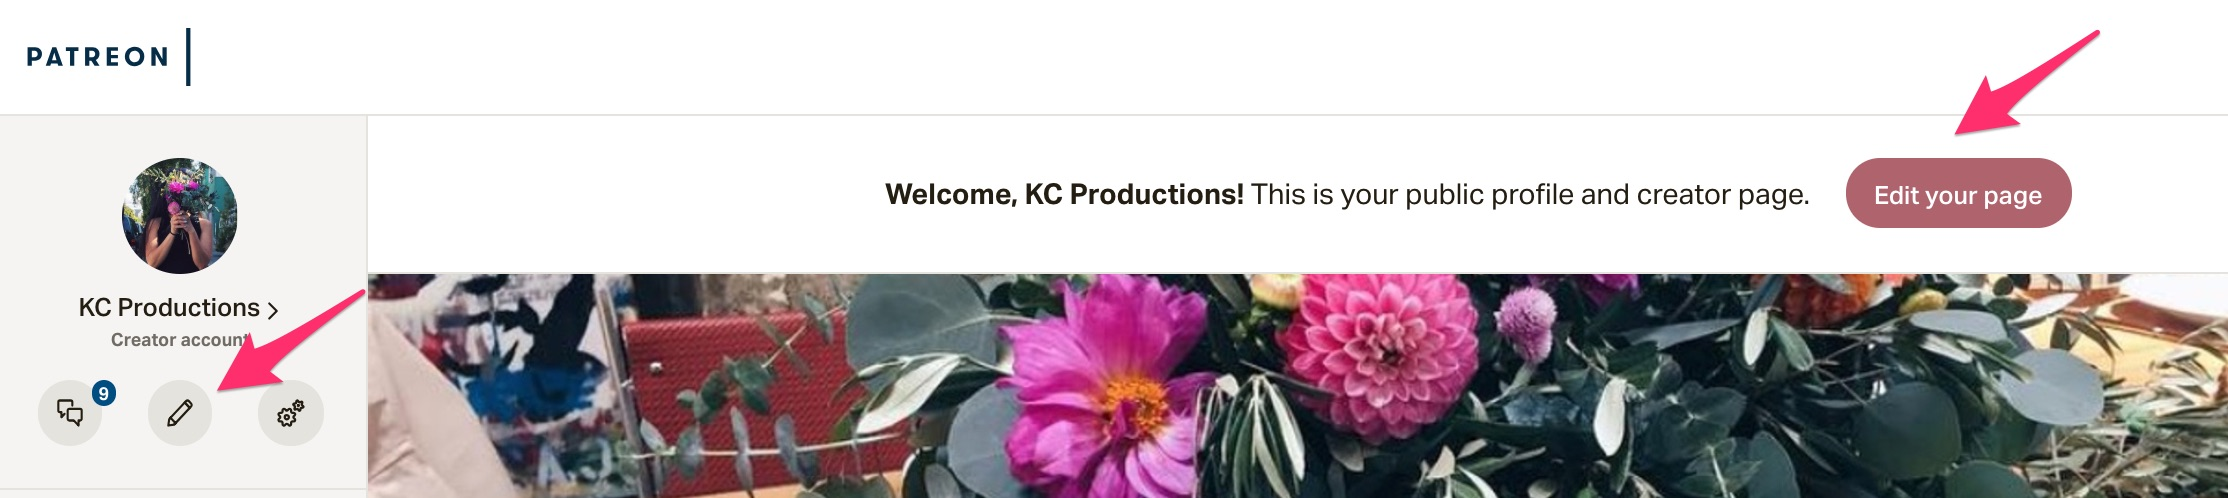 KC_Productions_is_creating_photographs_and_written_pieces_on_dining____Patreon.jpg